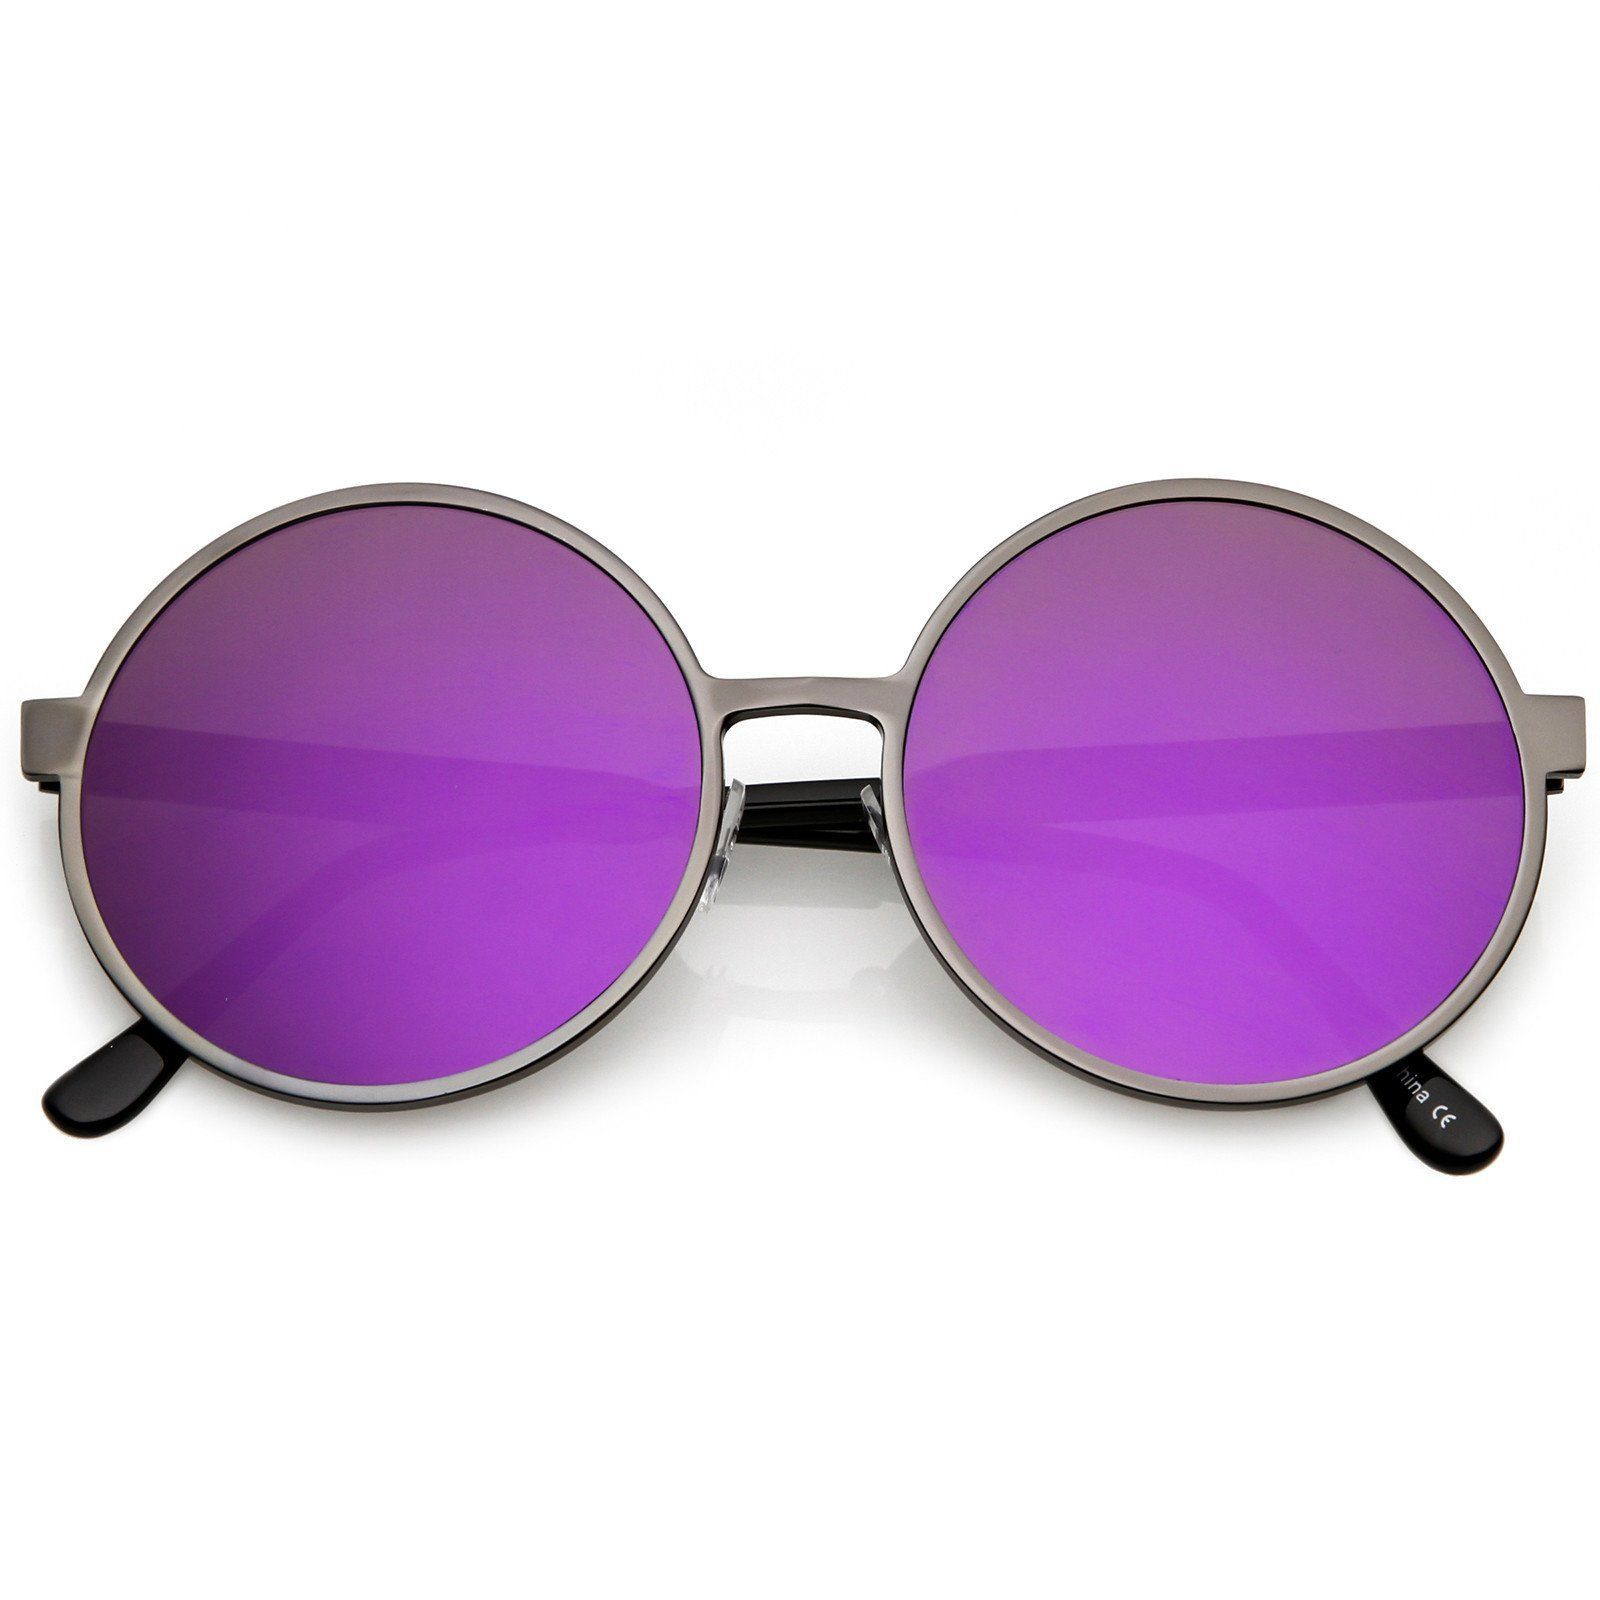 Oversize Round Metal Sunglasses With Color Mirrored Flat Lens 58mm